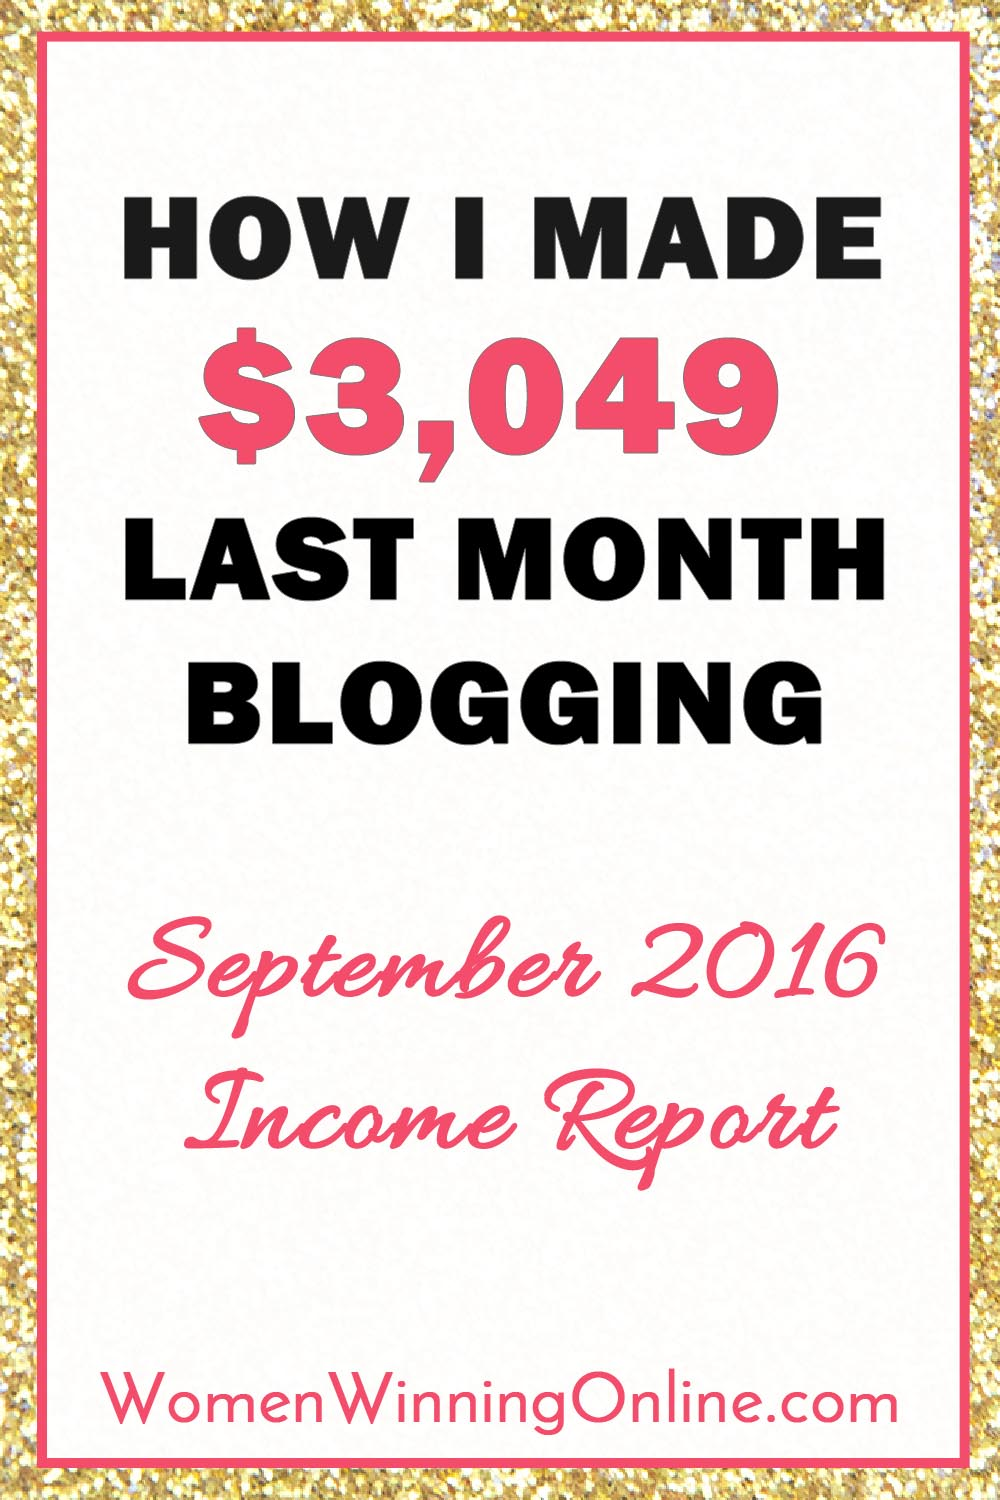 September 2016 Blog Income Report